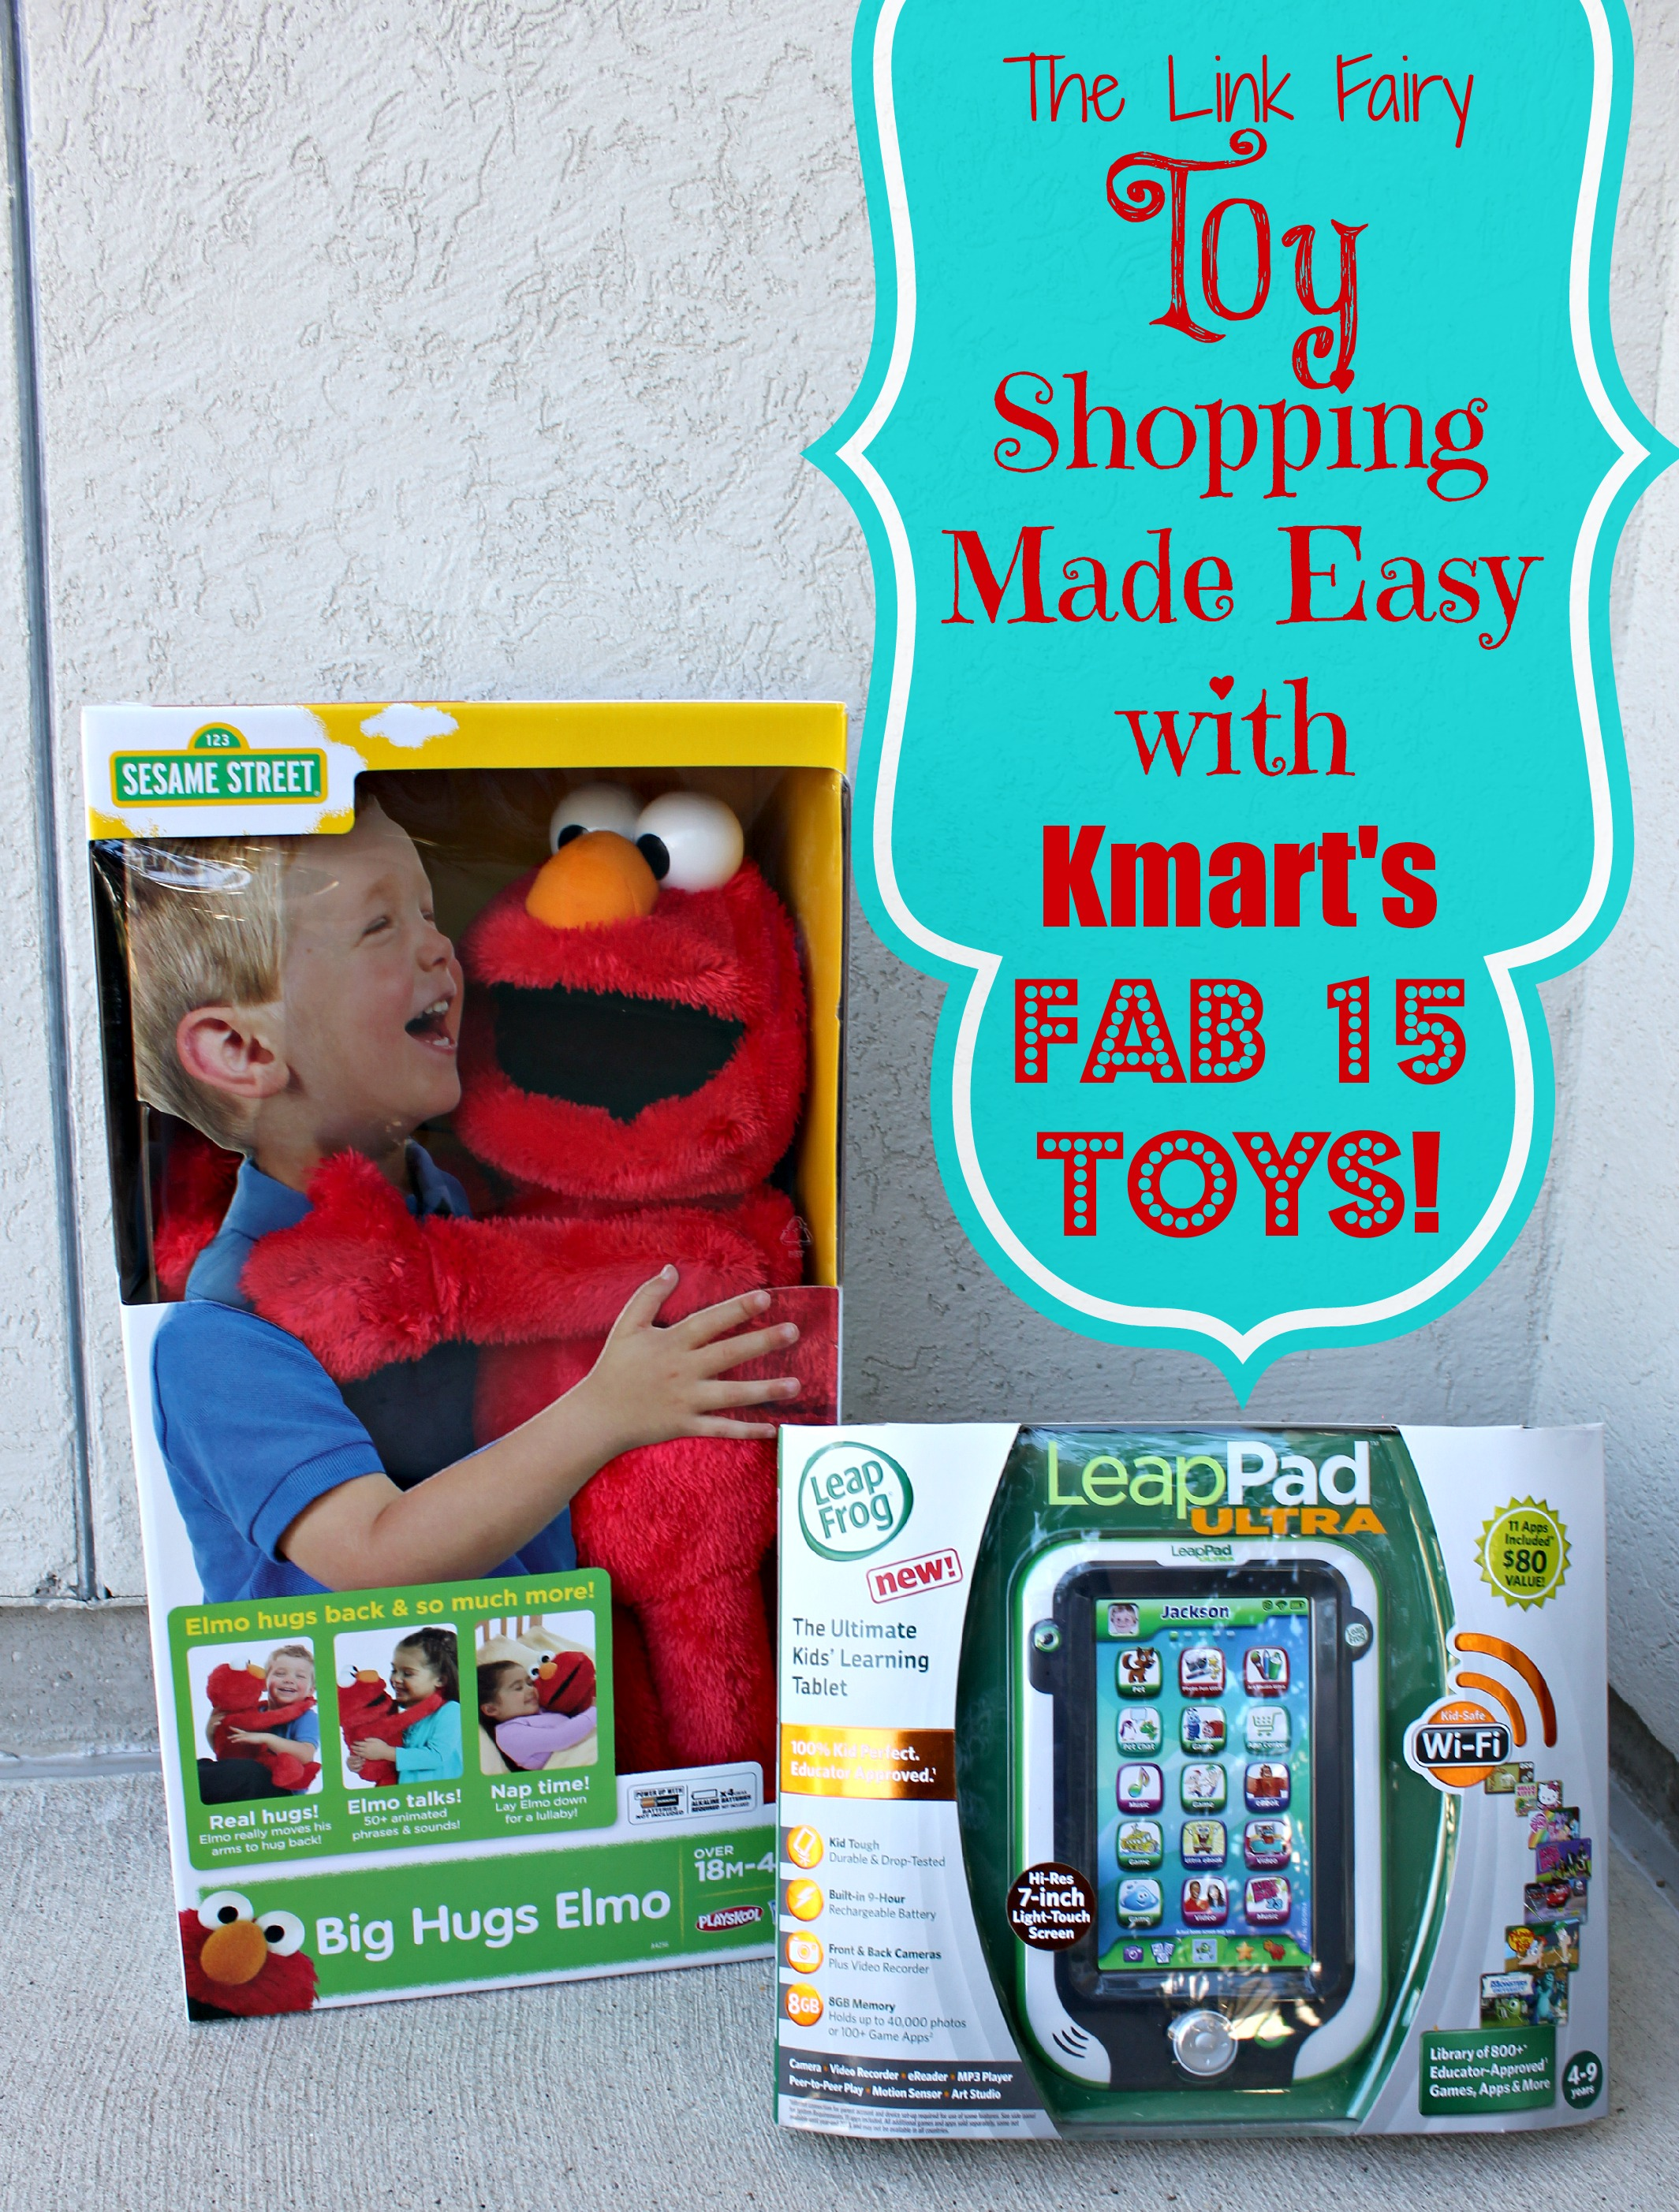 Kmart is the big box department store that has your best shopping experience in mind with a massive array of products to browse. Take close to 75% off baby care items like diapers, toys and bottles to keep your child happy and healthy.